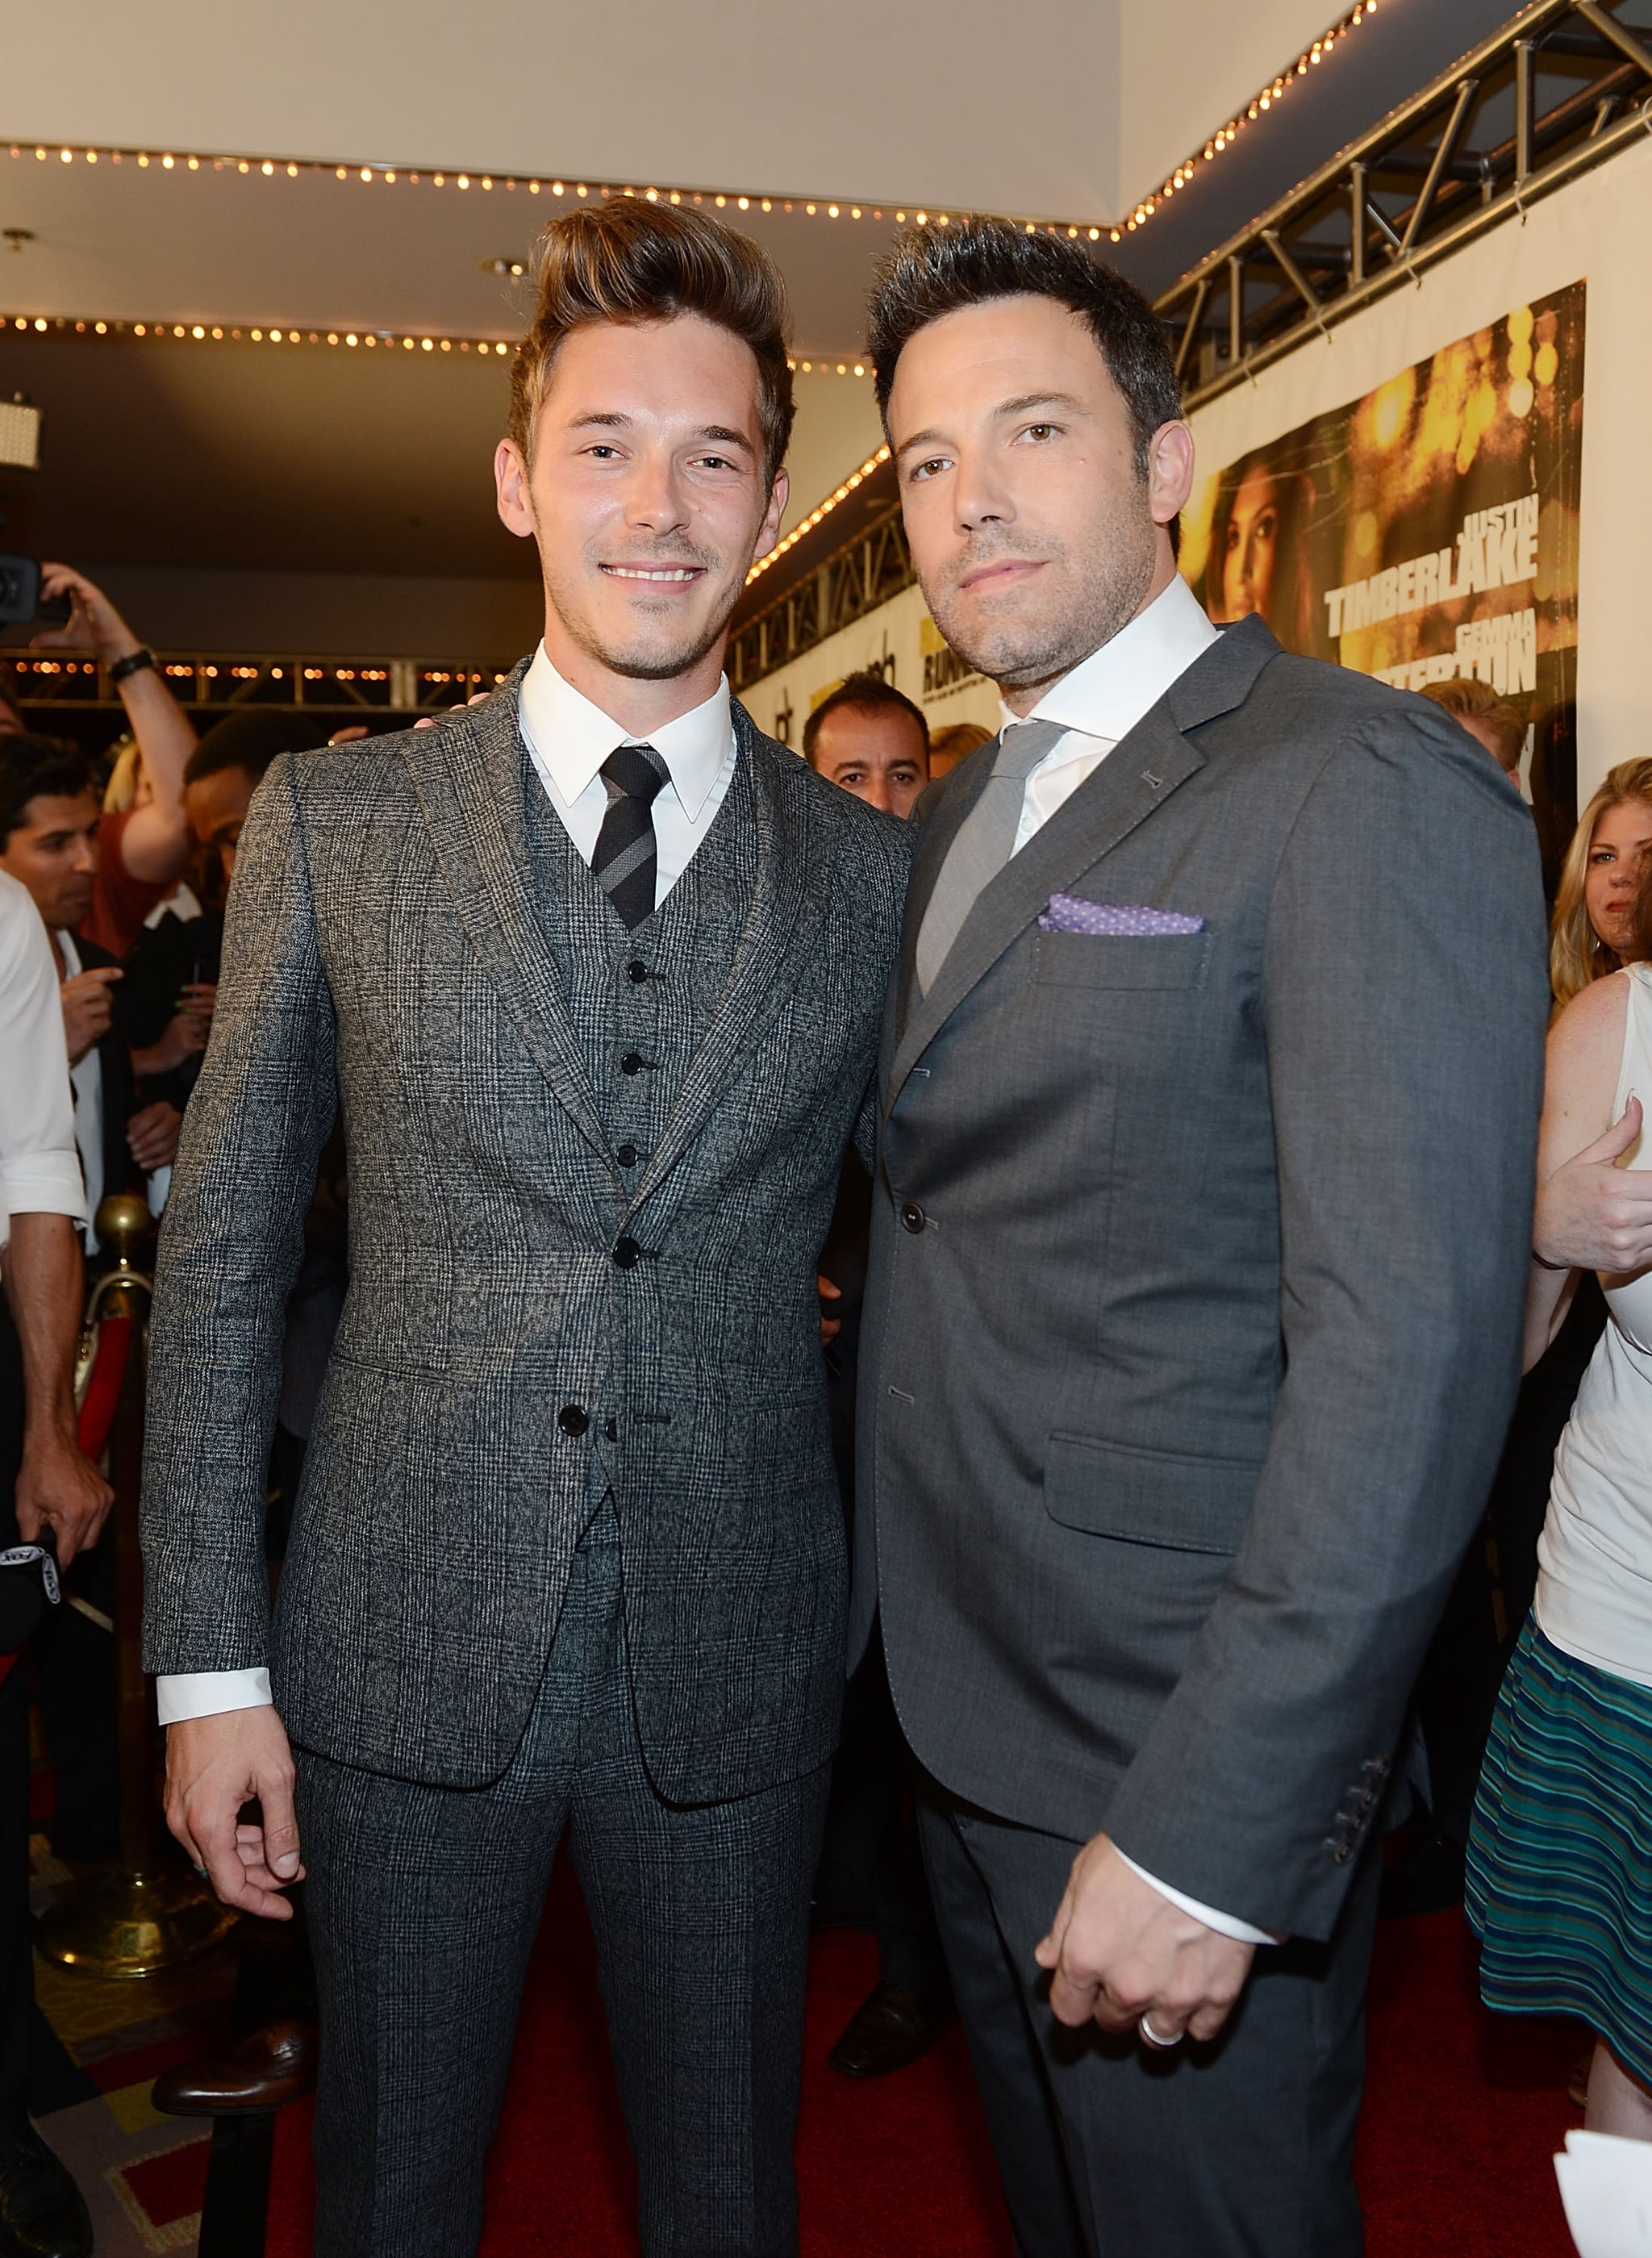 Ben Affleck posed for photos with Sam Palladio.